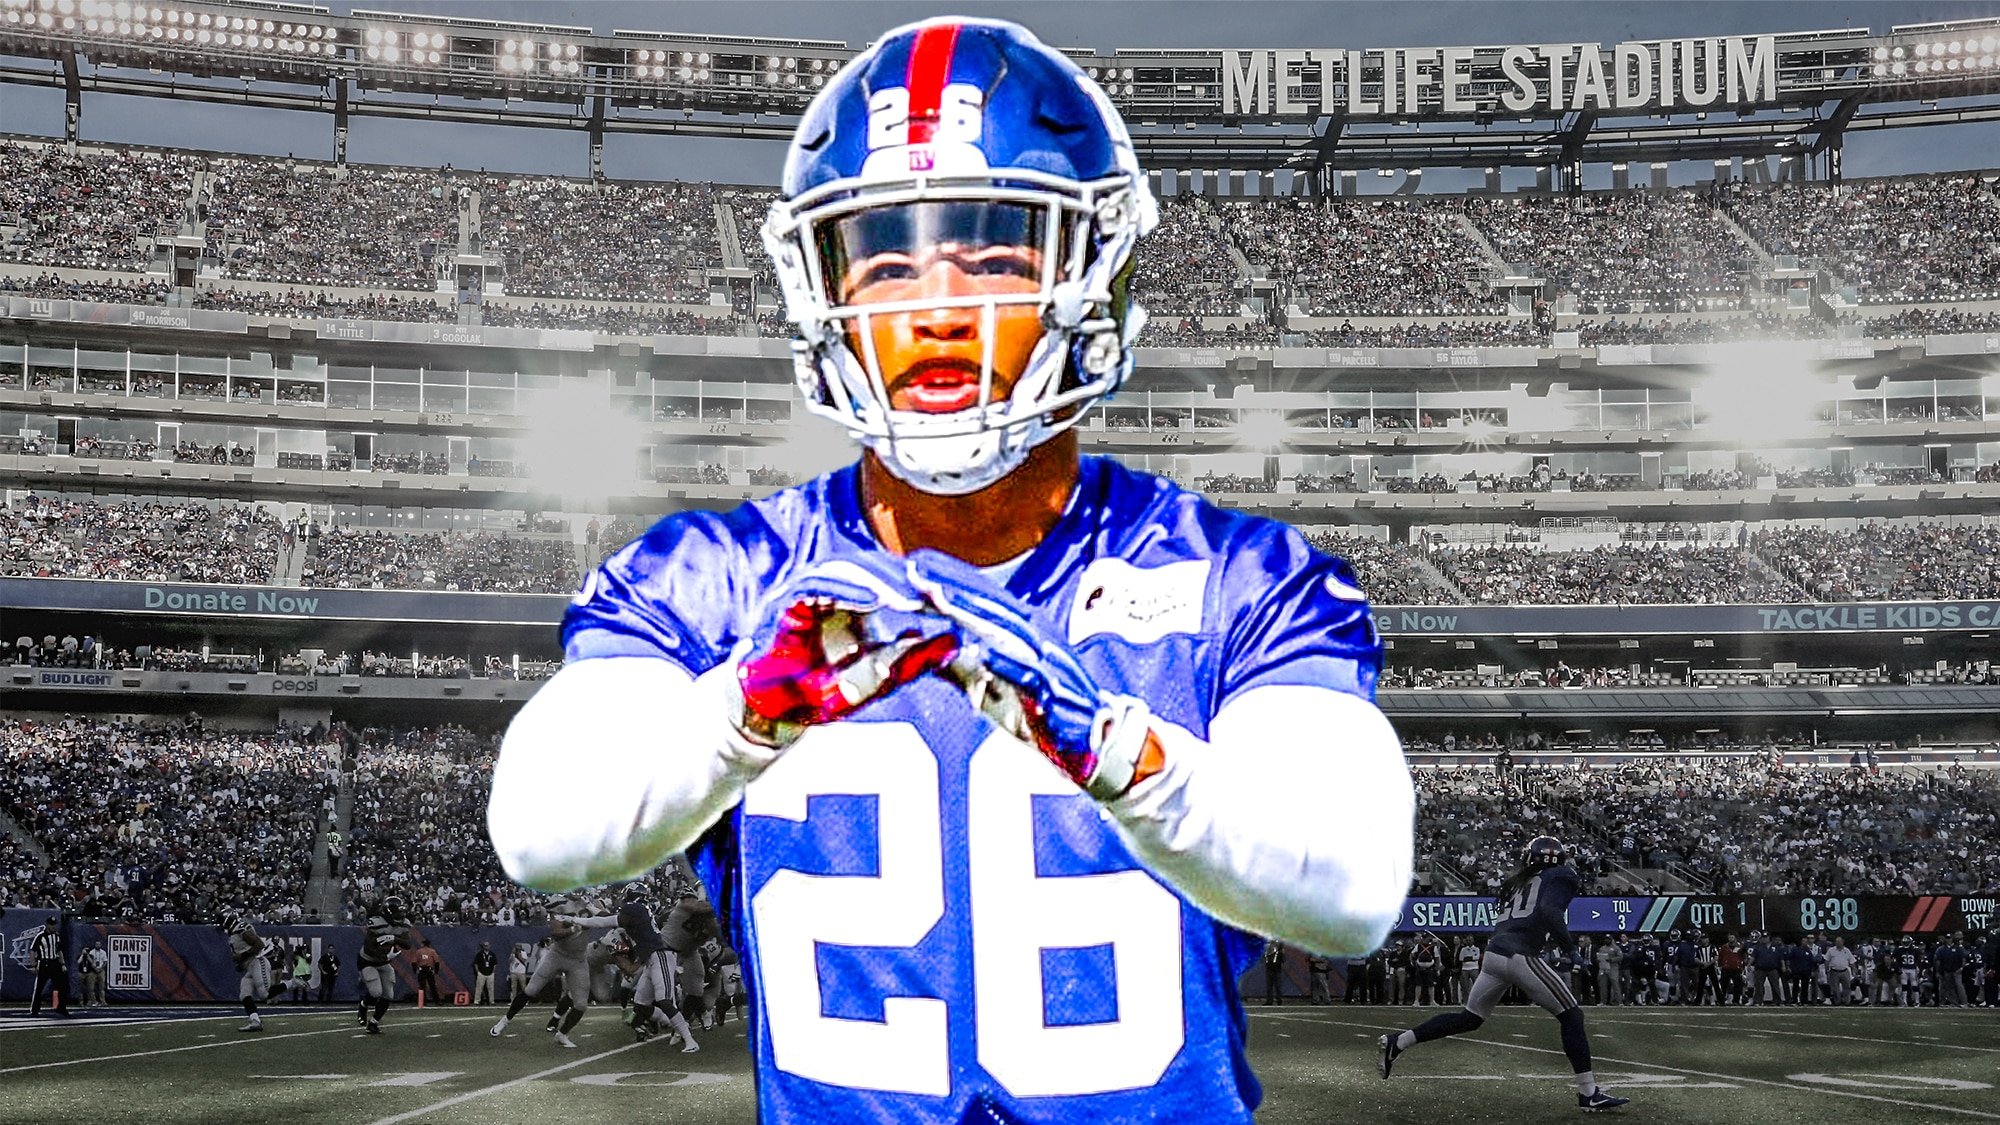 New York Giants RB Saquon Barkley could easily finish 2nd in